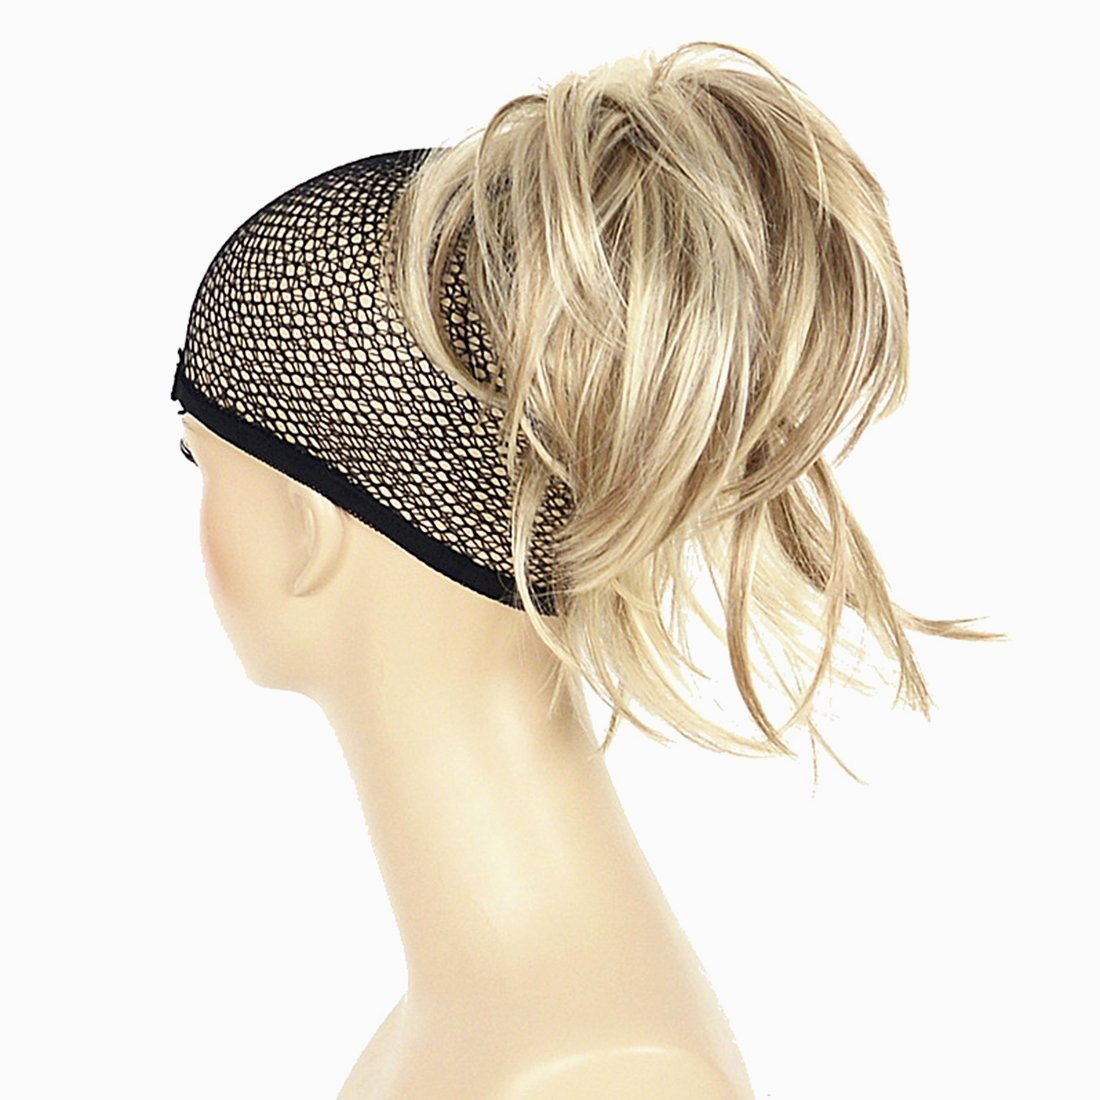 Adjustable Messy Style Ponytail Hair Extension Synthetic Hair-Piece with Jaw Claw Amzing Shape For You Hivision(H16/613 Blonde Highlighted) by Hivision